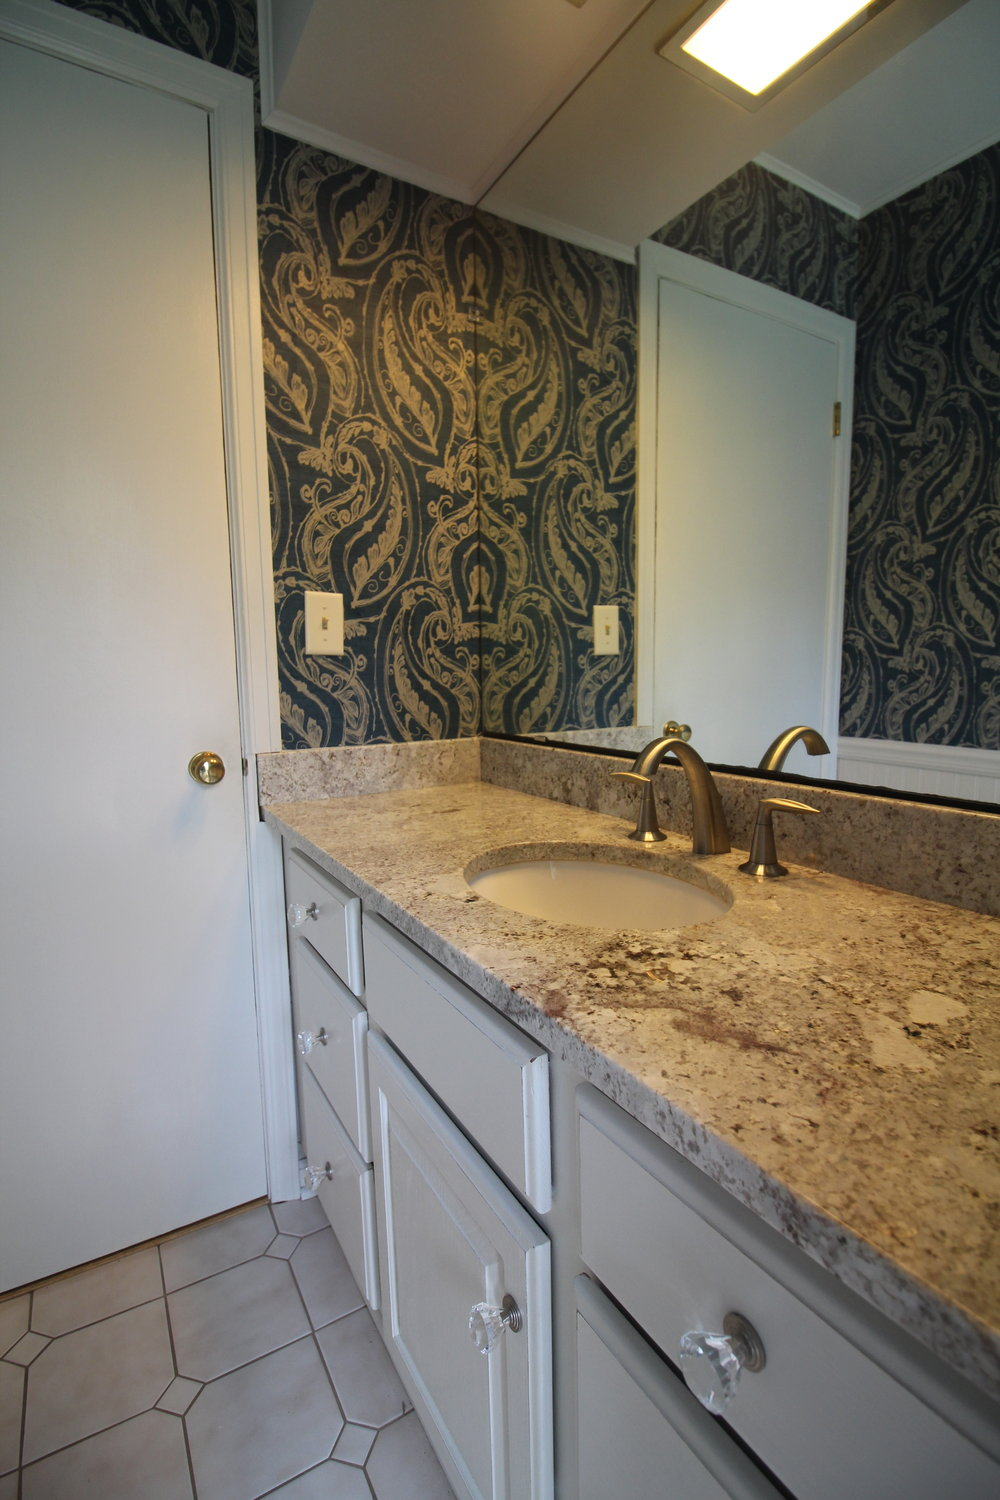 Powder Room Transformation    A renewed look for this powder room transformation. Painted cabinets, new counter tops and plumbing fixtures with a jazzy wallpaper refreshed this bathroom.